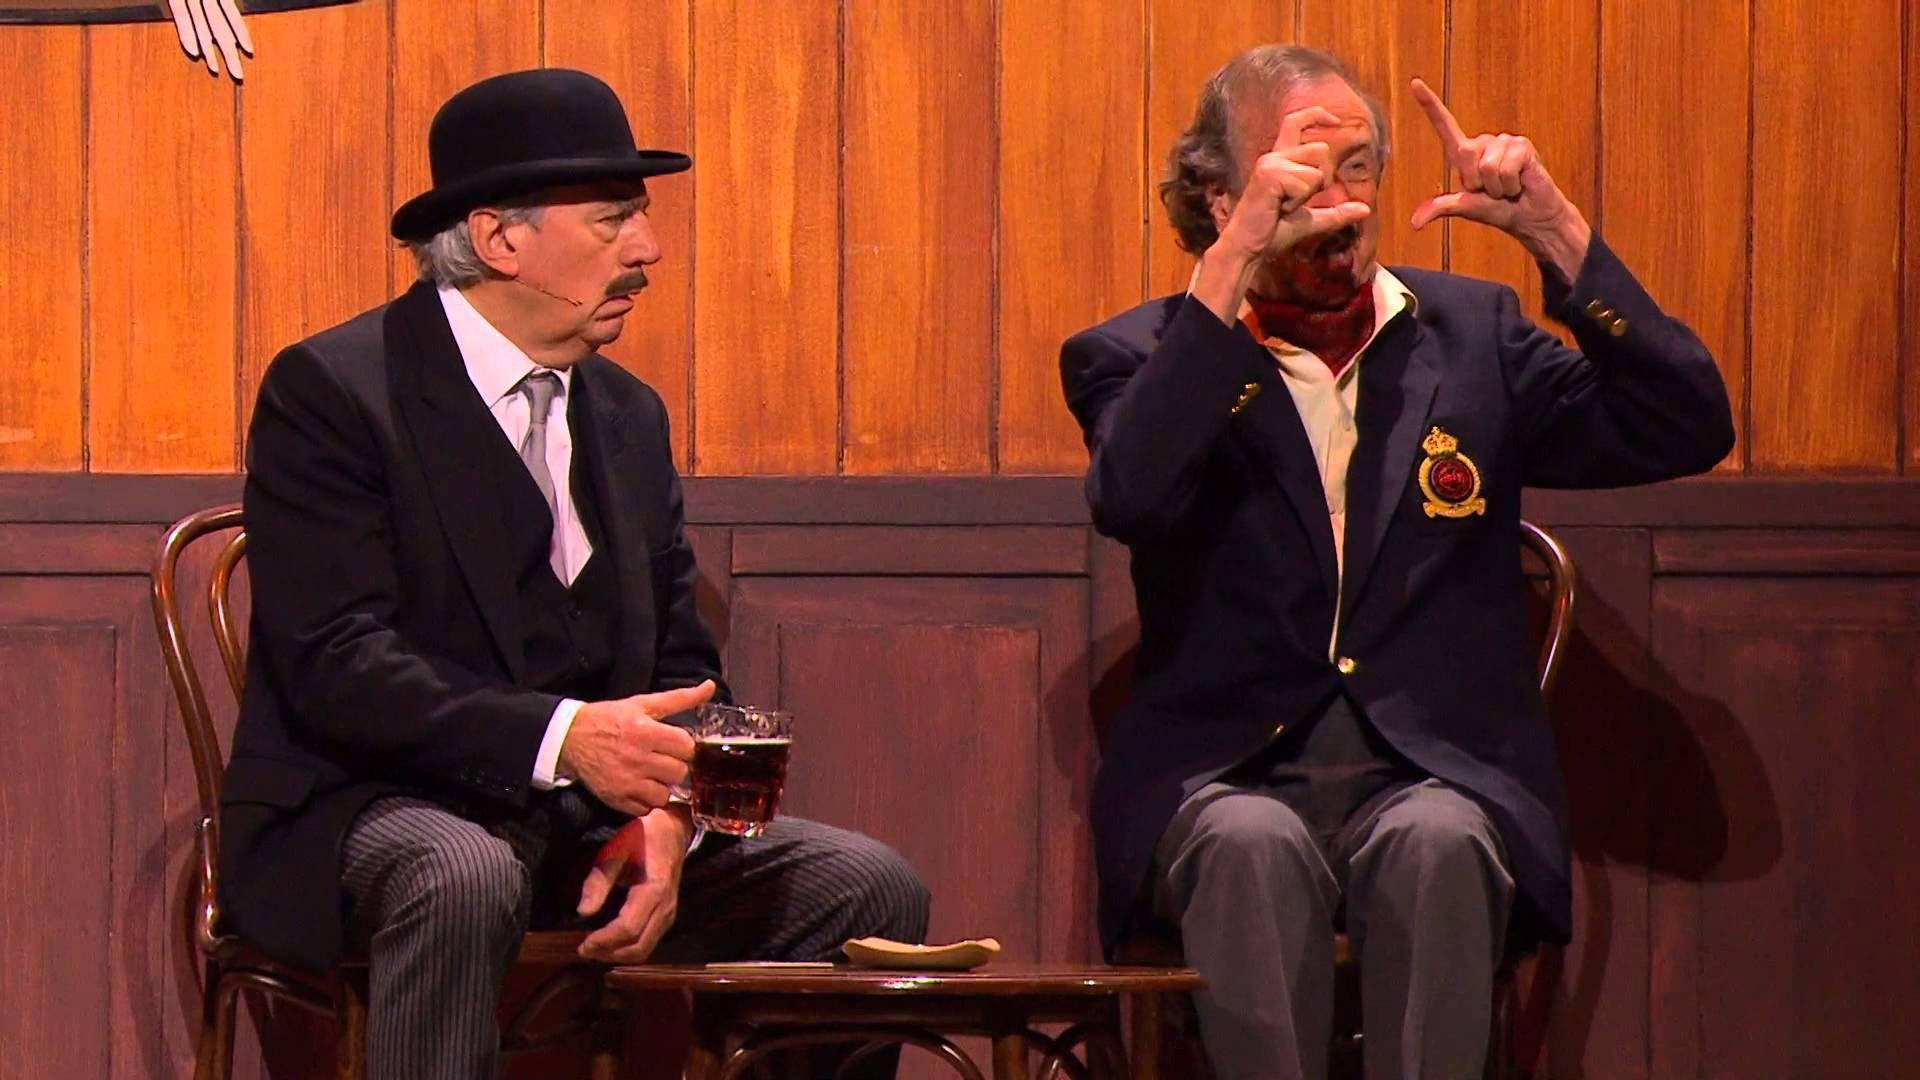 Monty Python revives great comedy with 'One Down Five To Go'